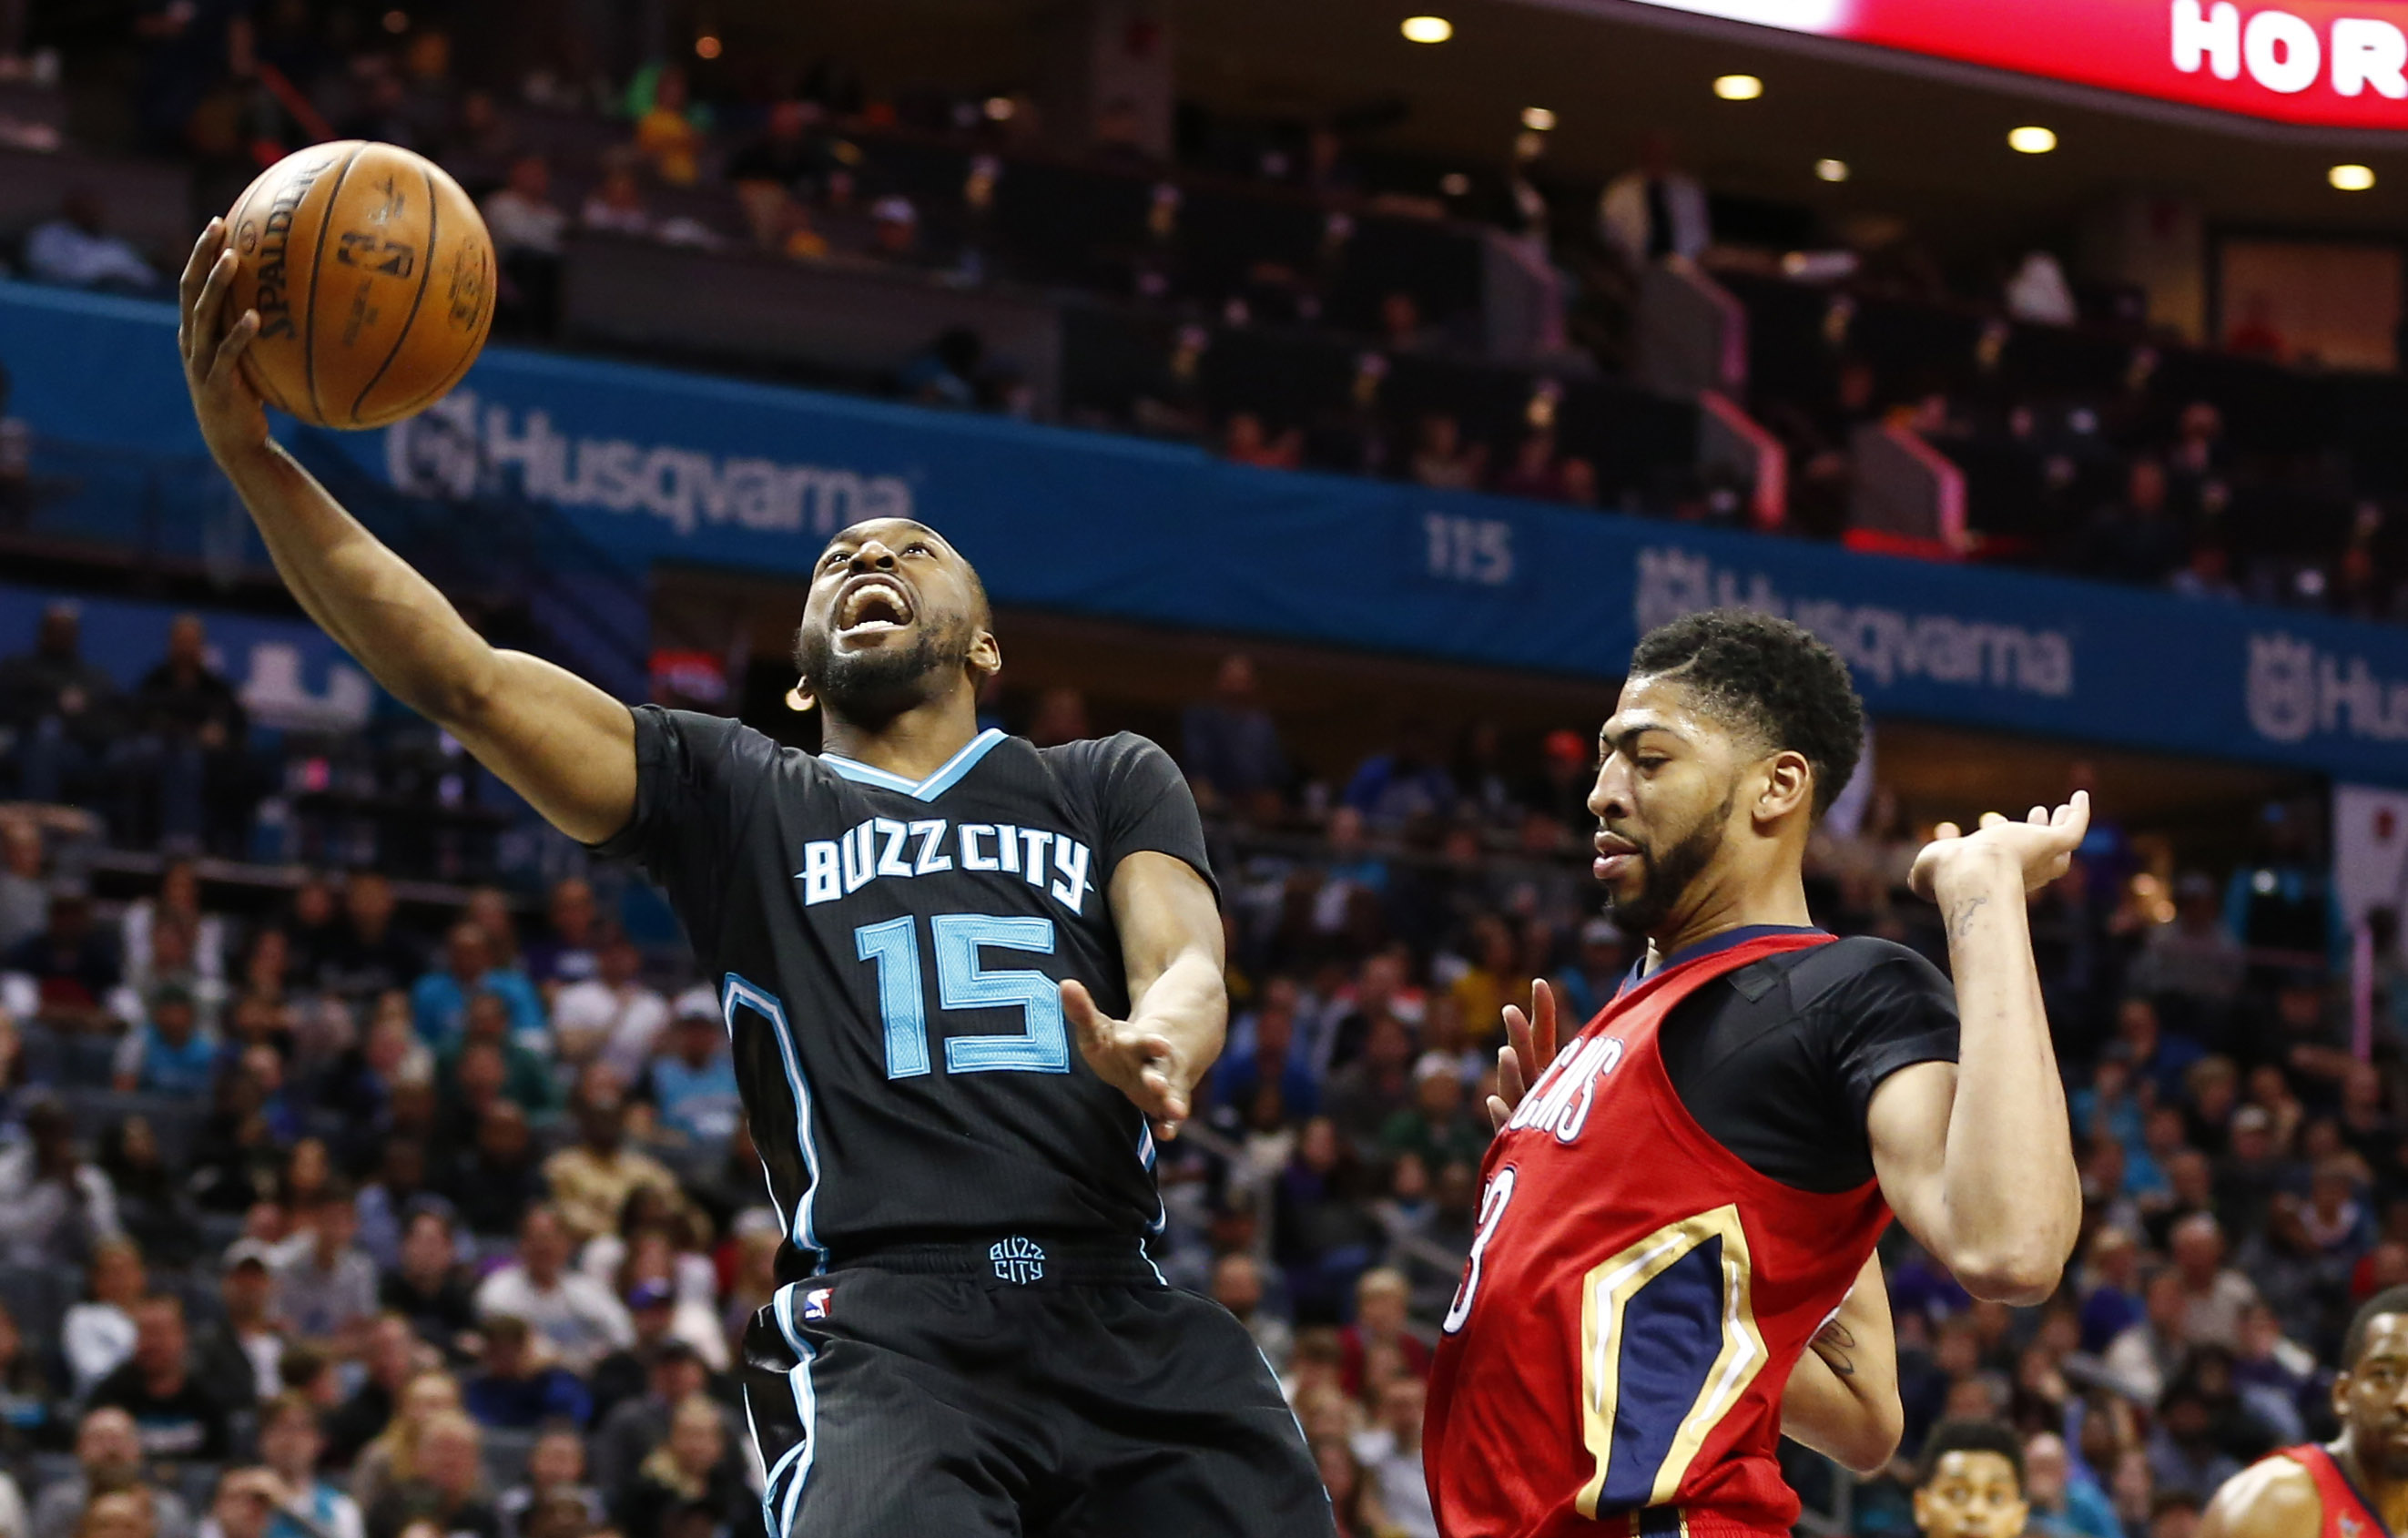 SR 2017-18 - Page 4 9935226-nba-new-orleans-pelicans-at-charlotte-hornets